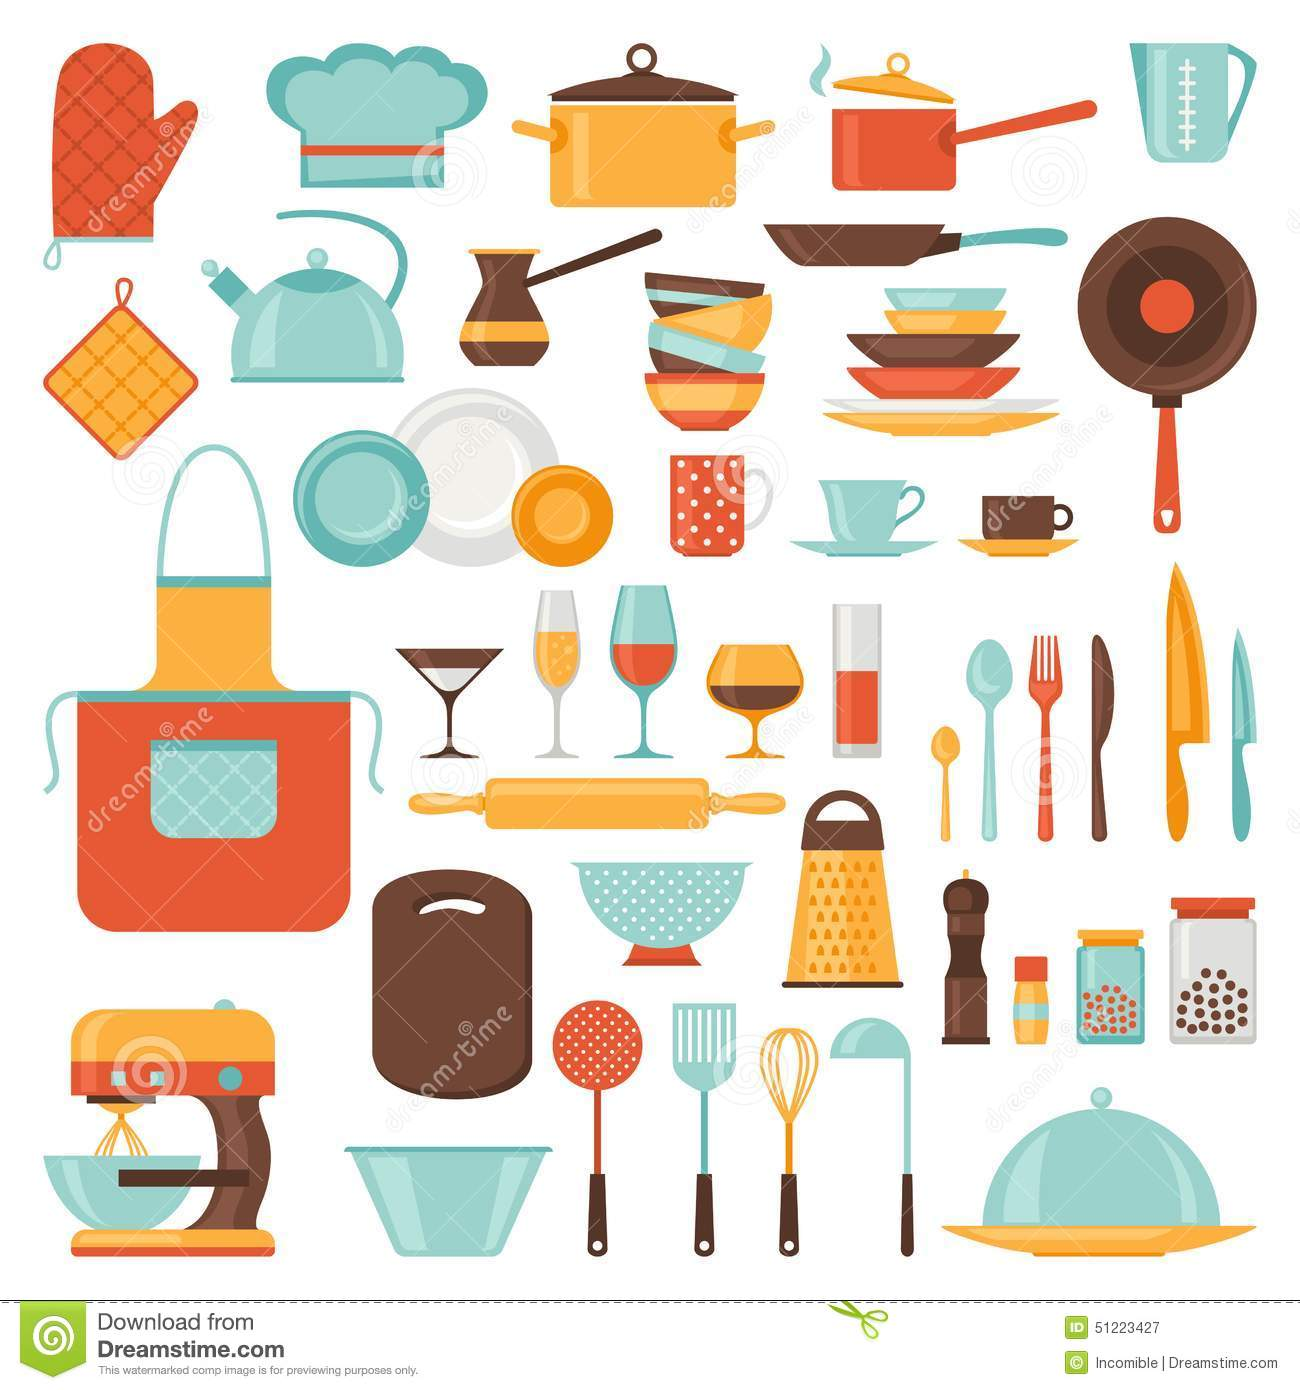 Teapot kitchen tool isolated icon stock illustration for Kitchen set up for restaurant